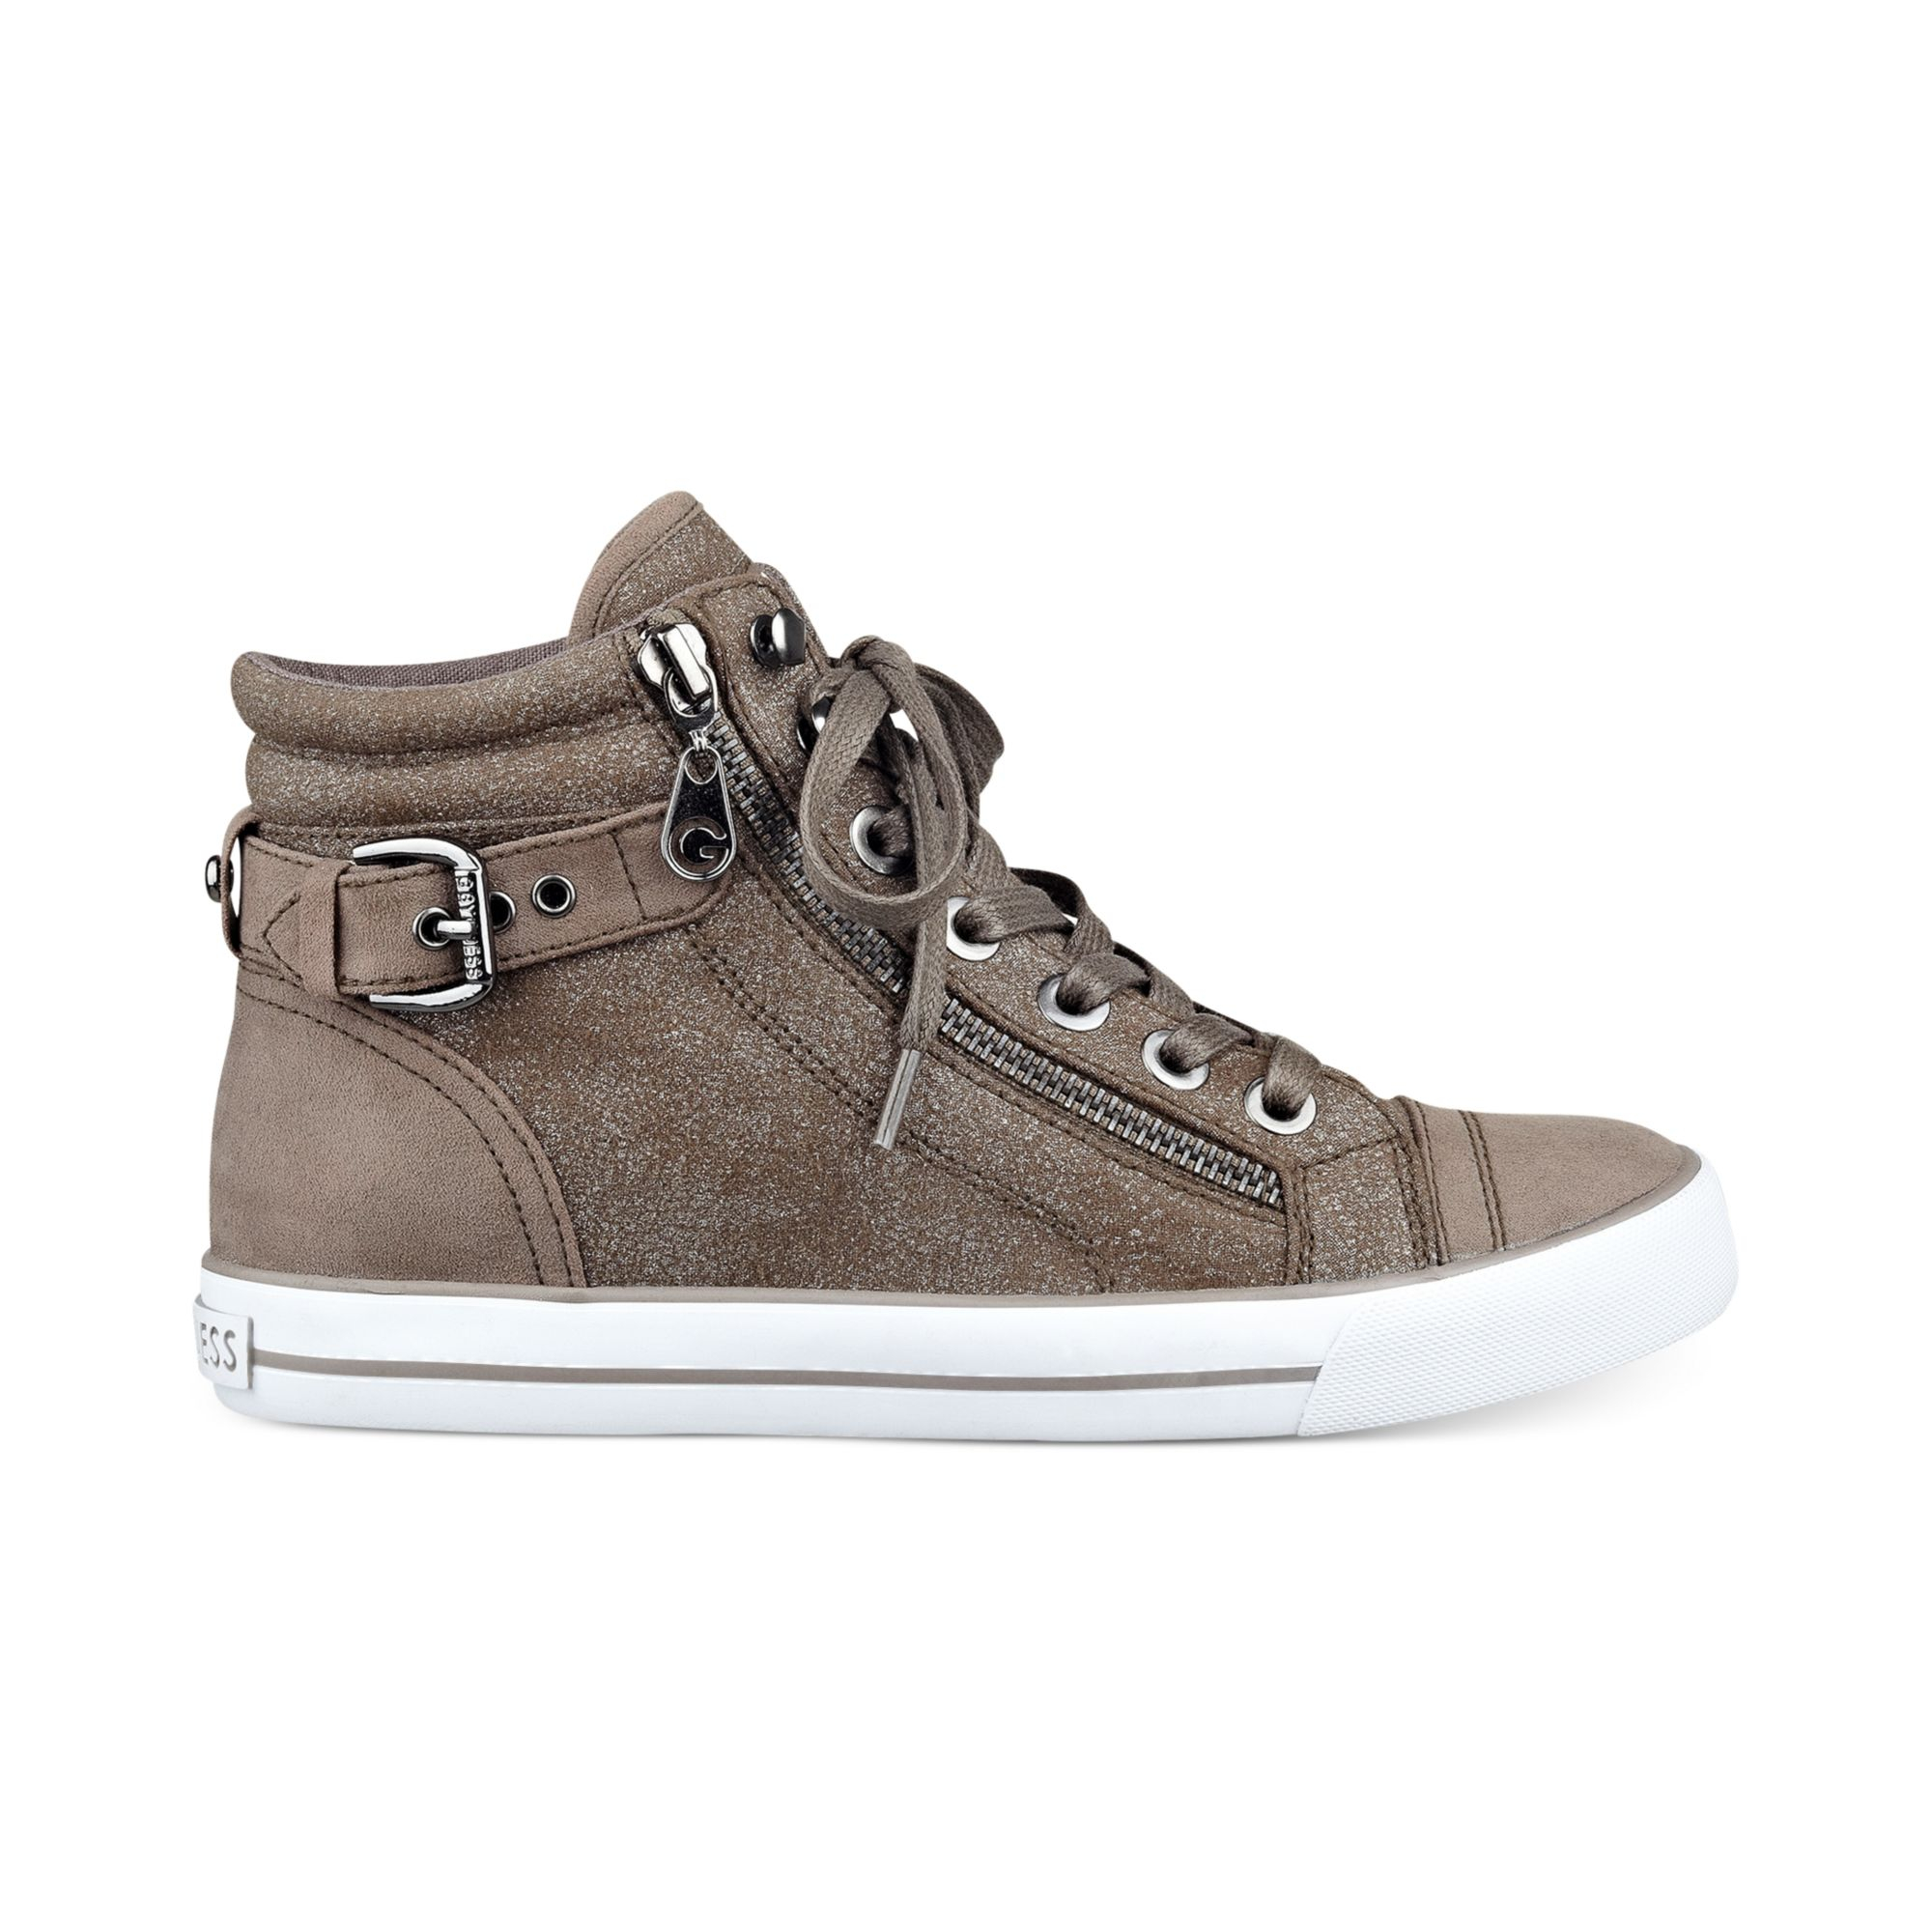 Lyst - G By Guess Womens Olama High Top Sneakers In Gray-2376